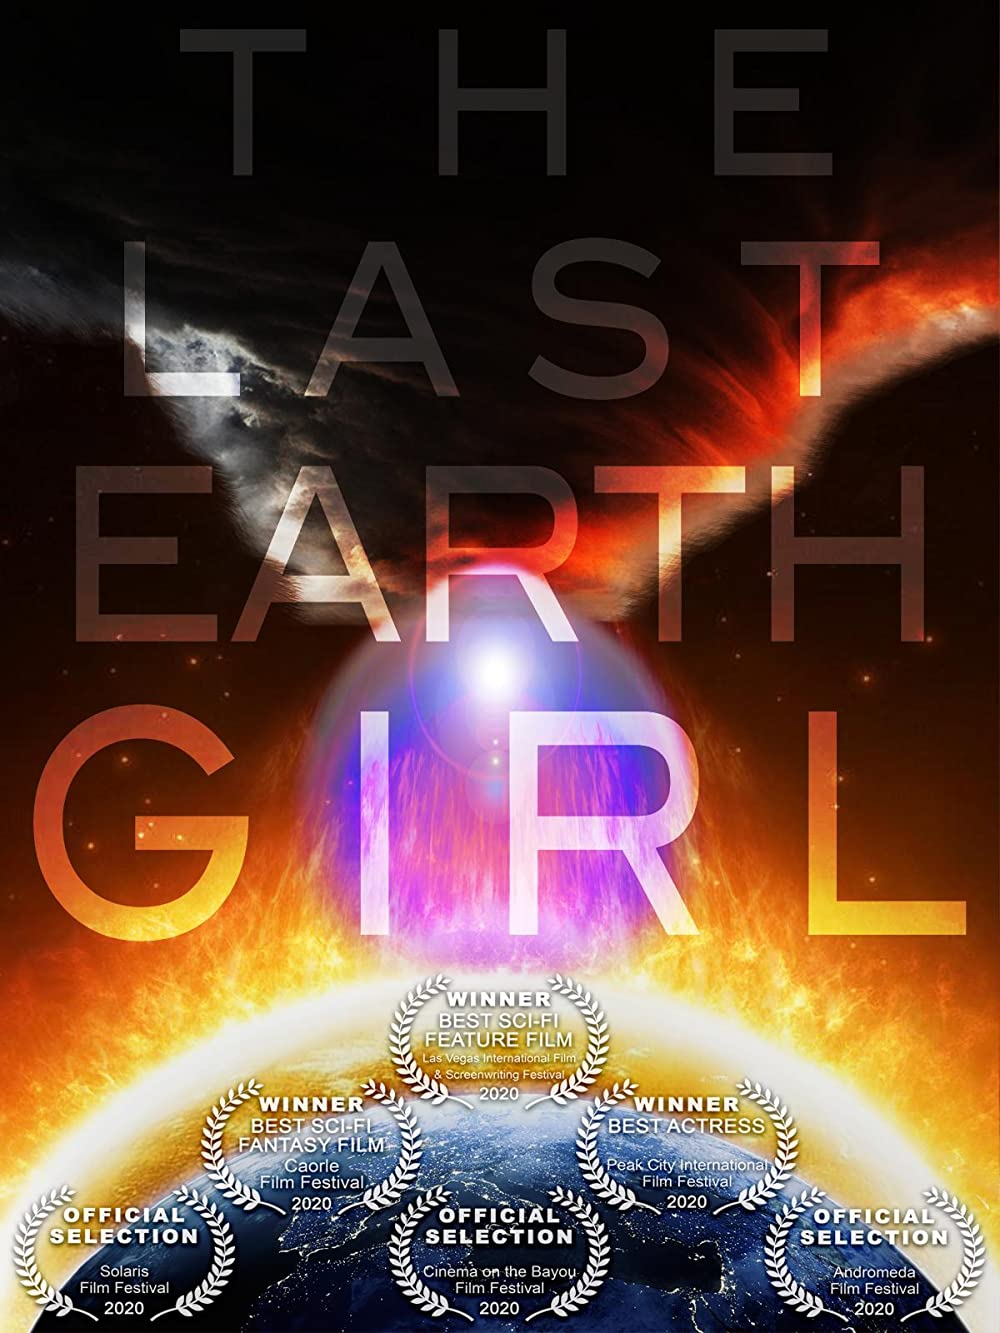 The Last Earth Girl Went To Space To Find God